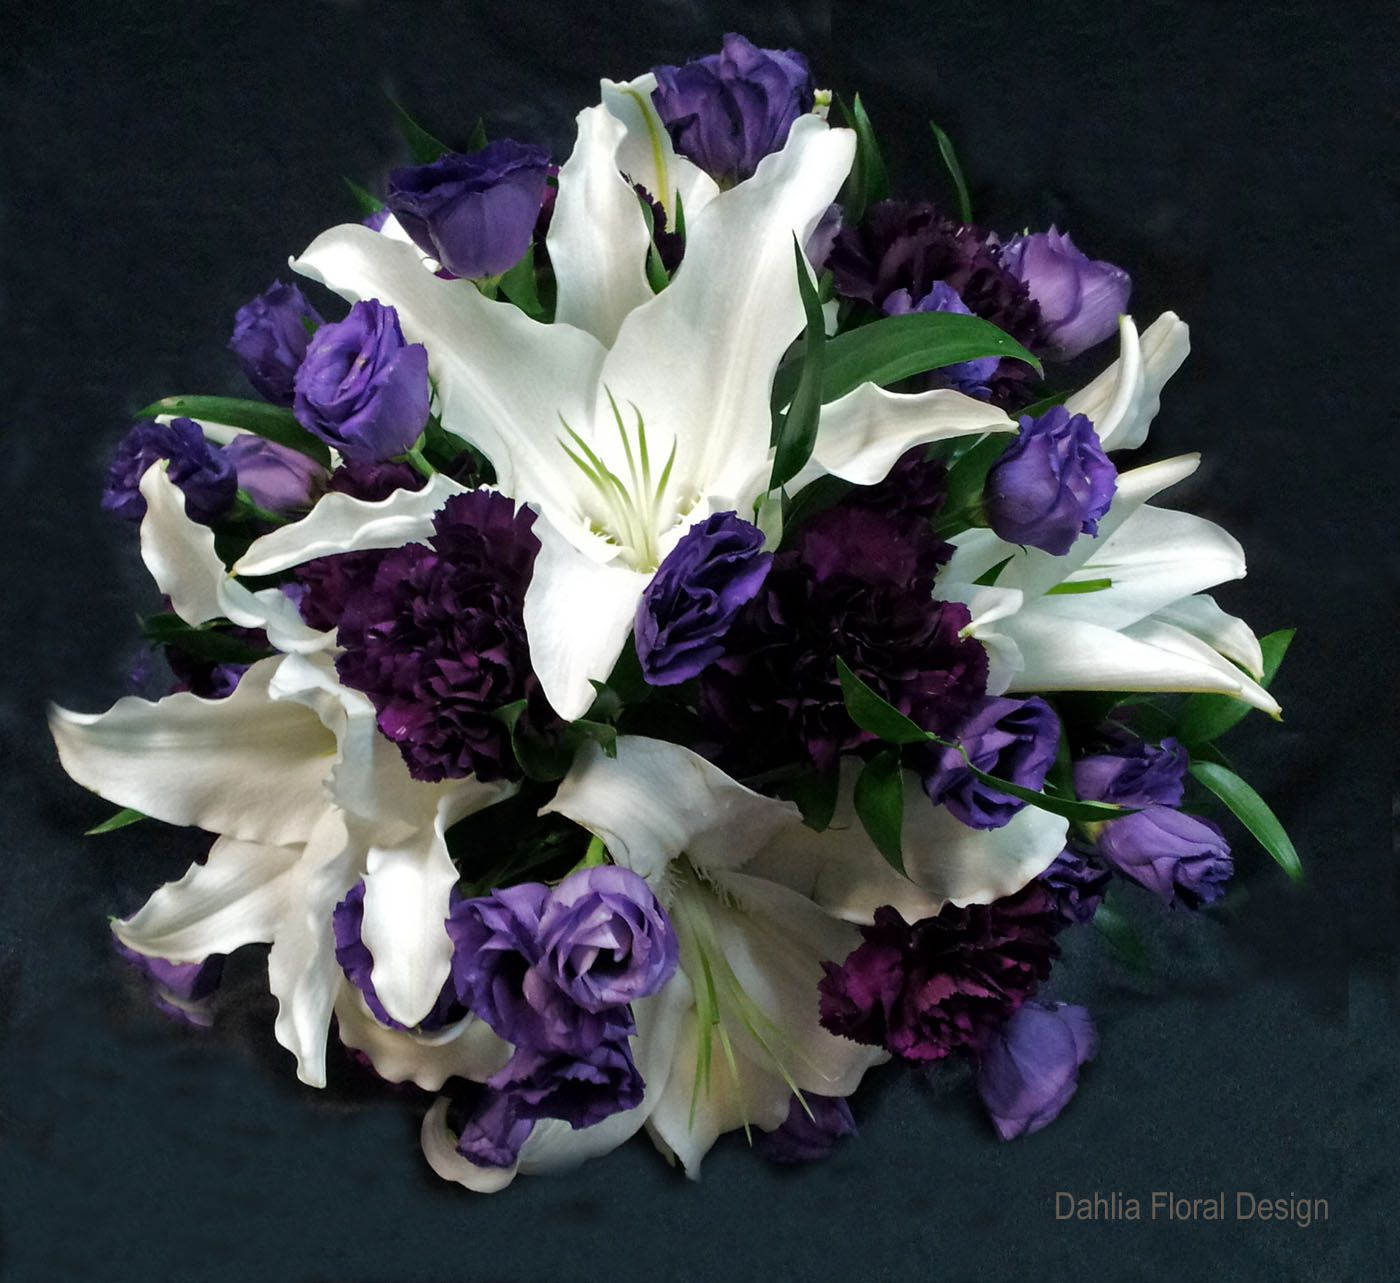 White lily with purple flowers calgary wedding flower bridal party white lily with purple flowers calgary wedding flower bridal party bouquet izmirmasajfo Images